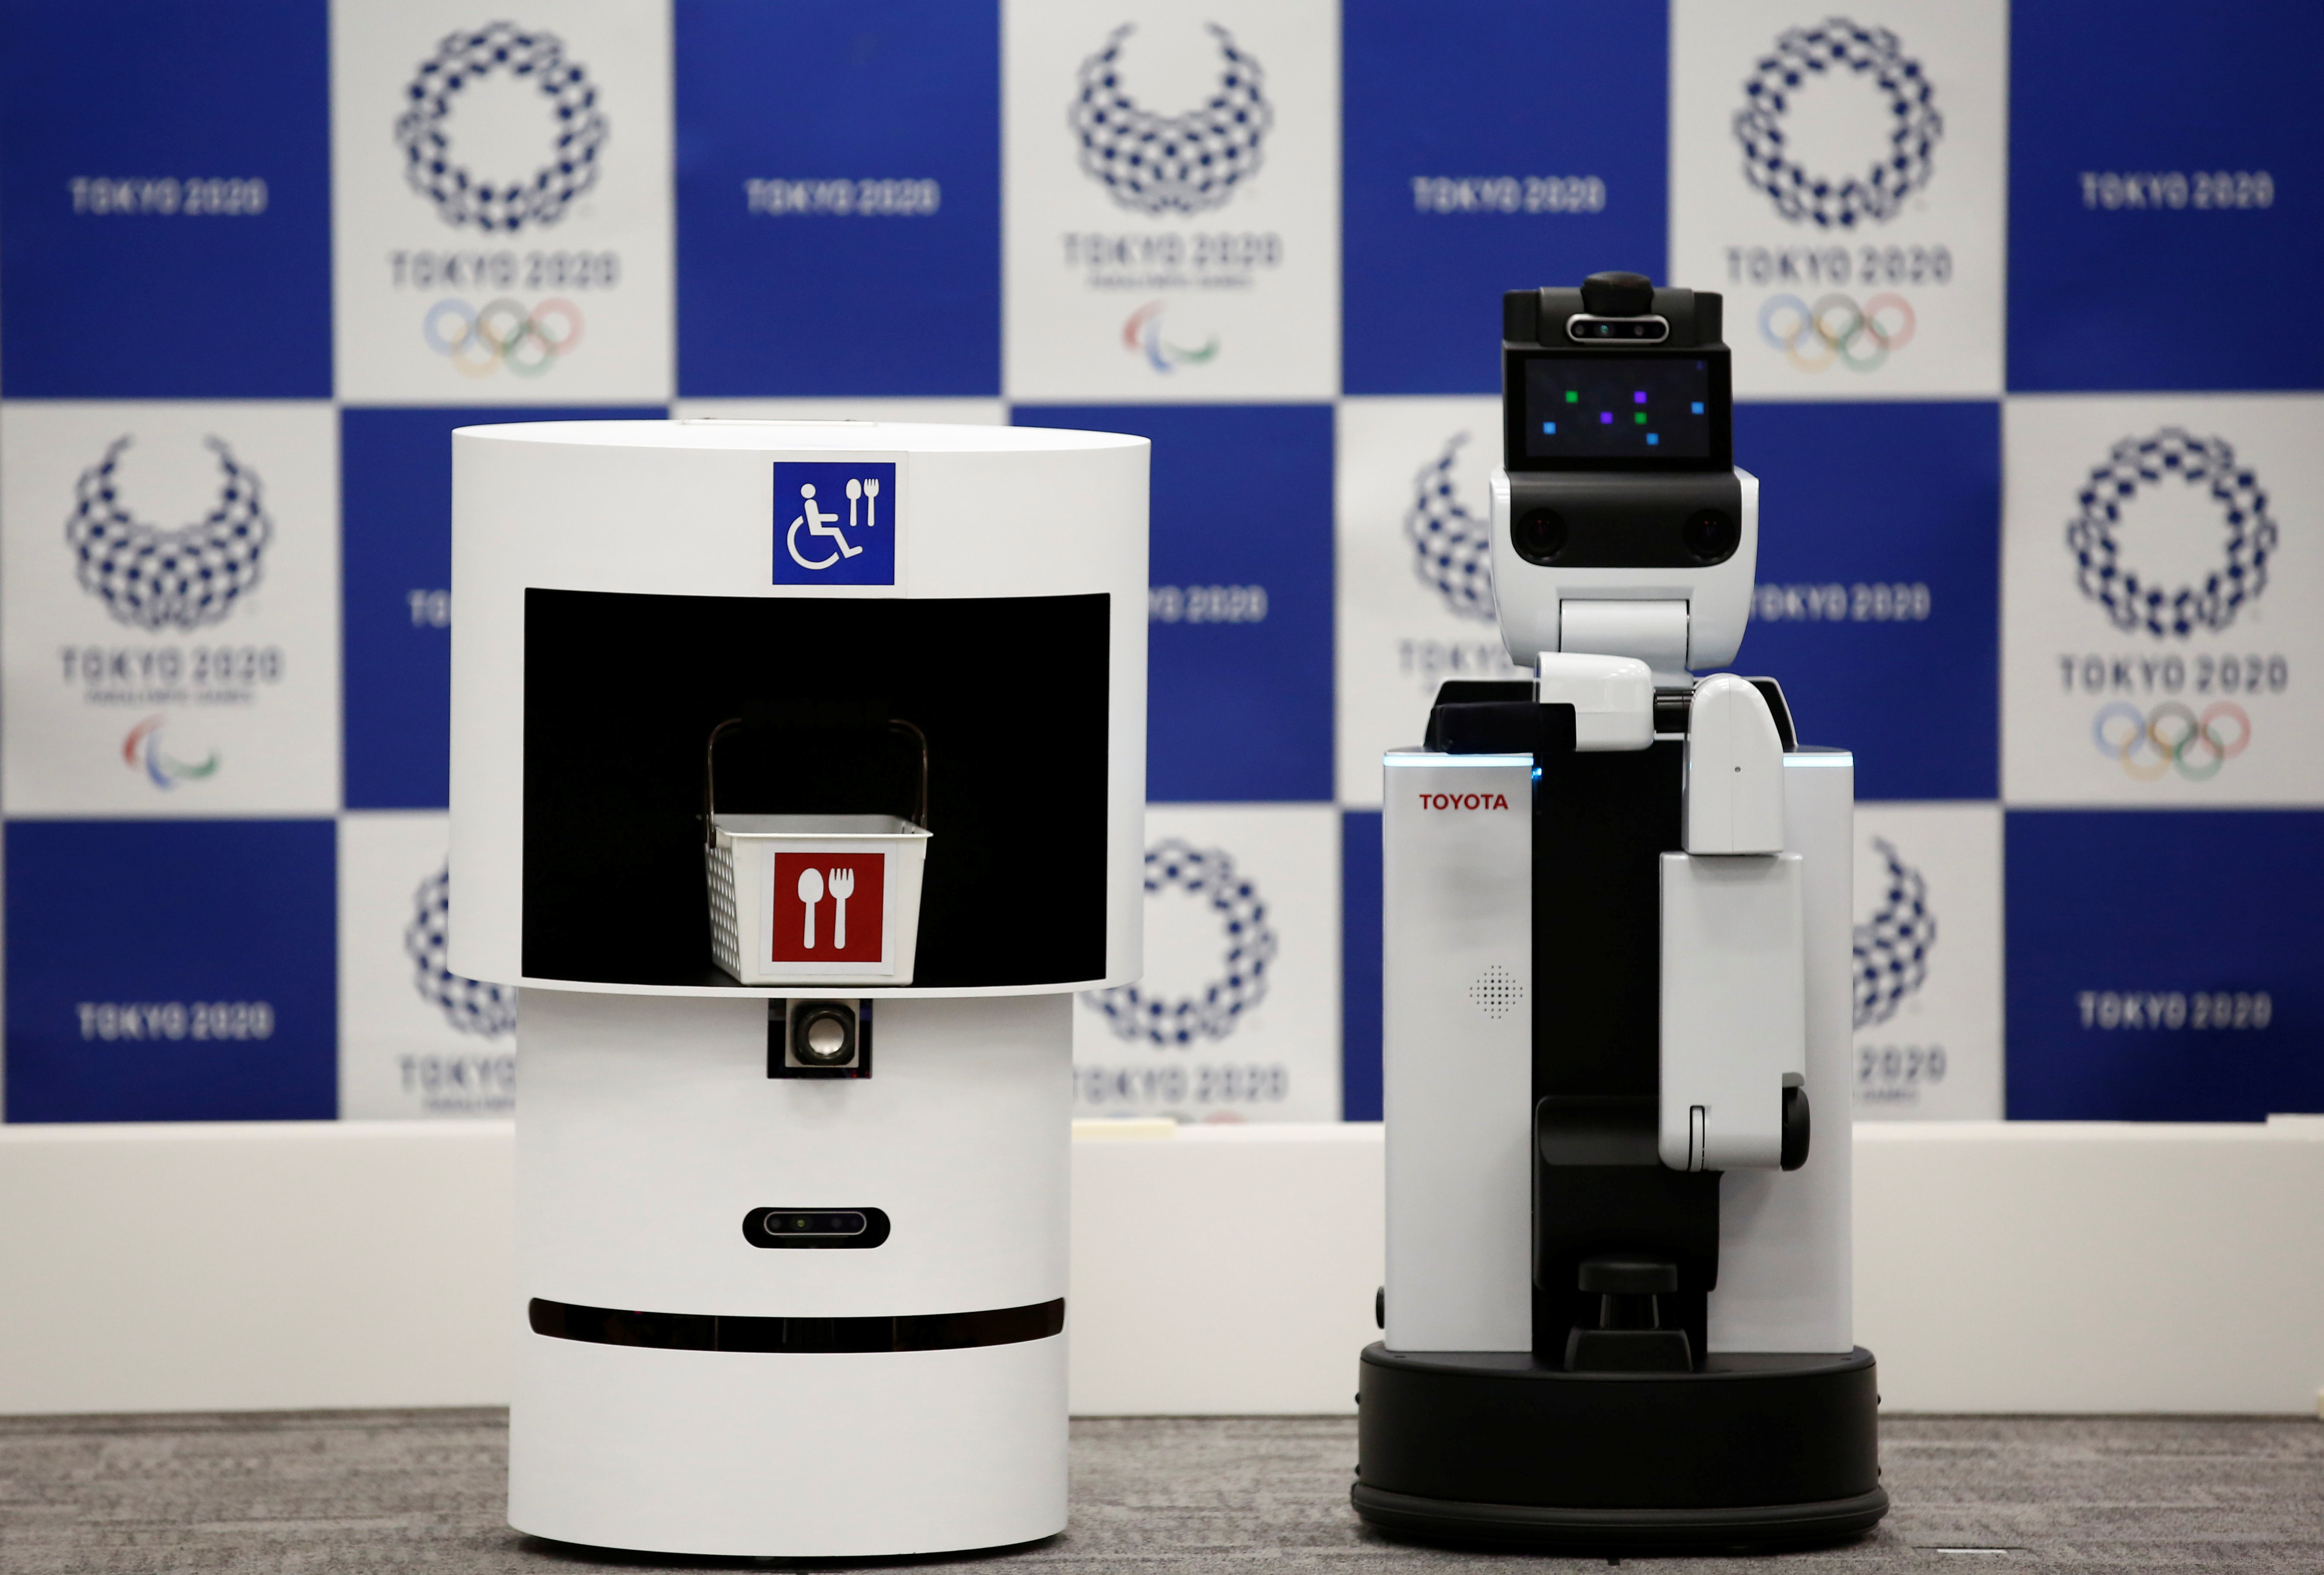 Toyota's DSR (Delivery Support Robot) (L) and HSR (Human Support Robot) are pictured at a demonstration of Tokyo 2020 Robot Project for Tokyo 2020 Olympic Games in Tokyo, Japan, March 15, 2019. REUTERS/Kim Kyung-hoon - RC1E57760890